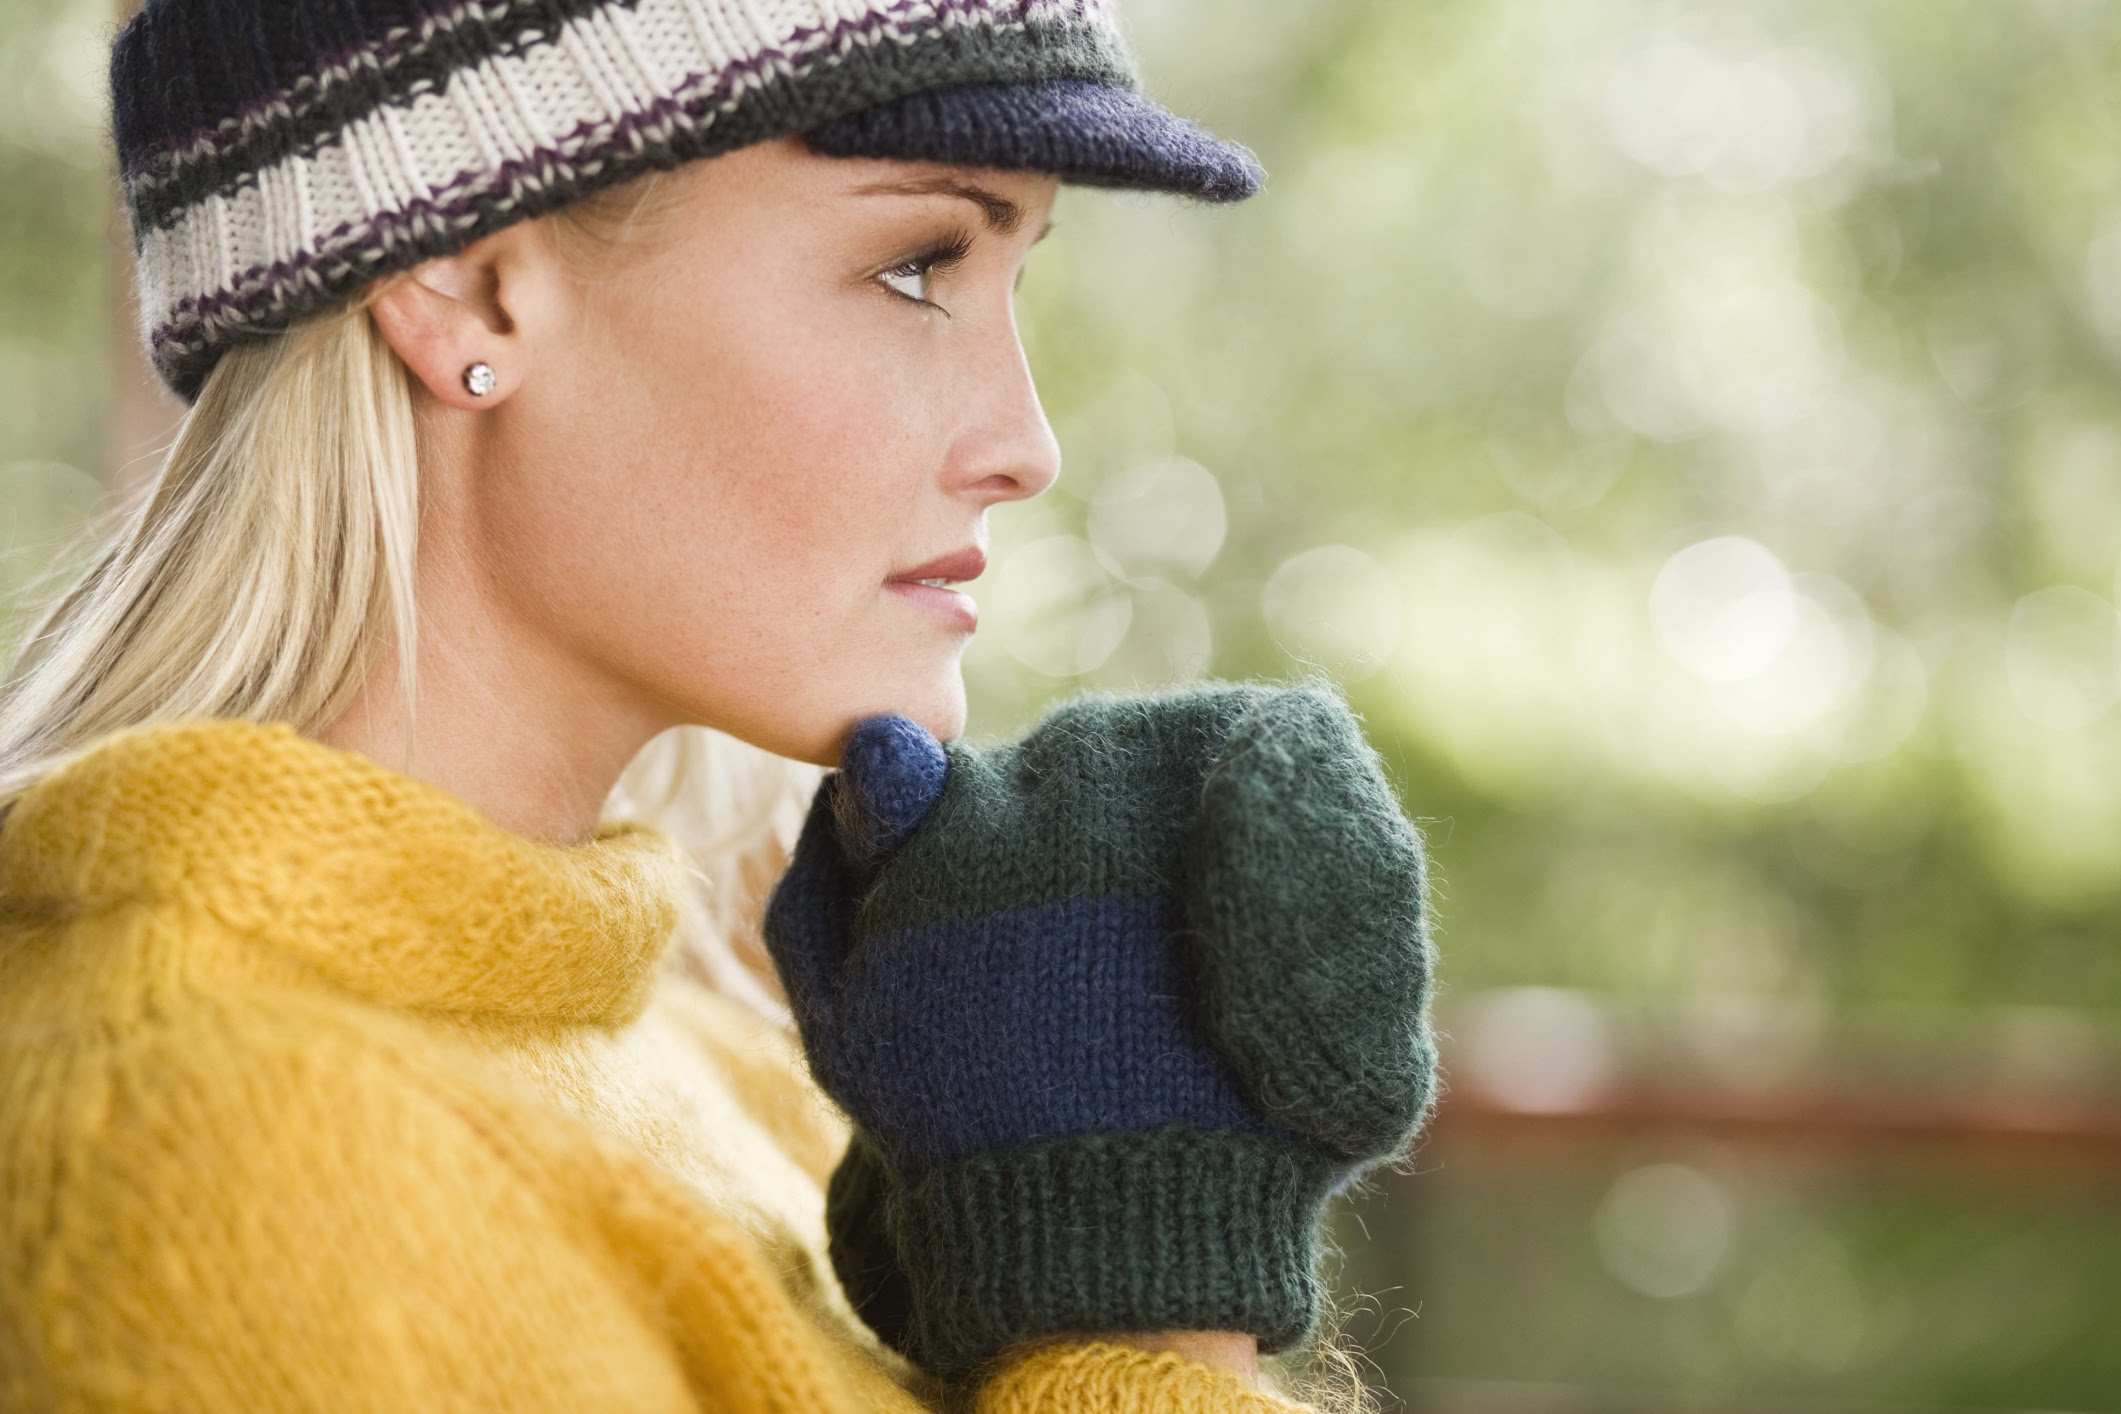 Keep your hands warm, toasty and protected this winter.